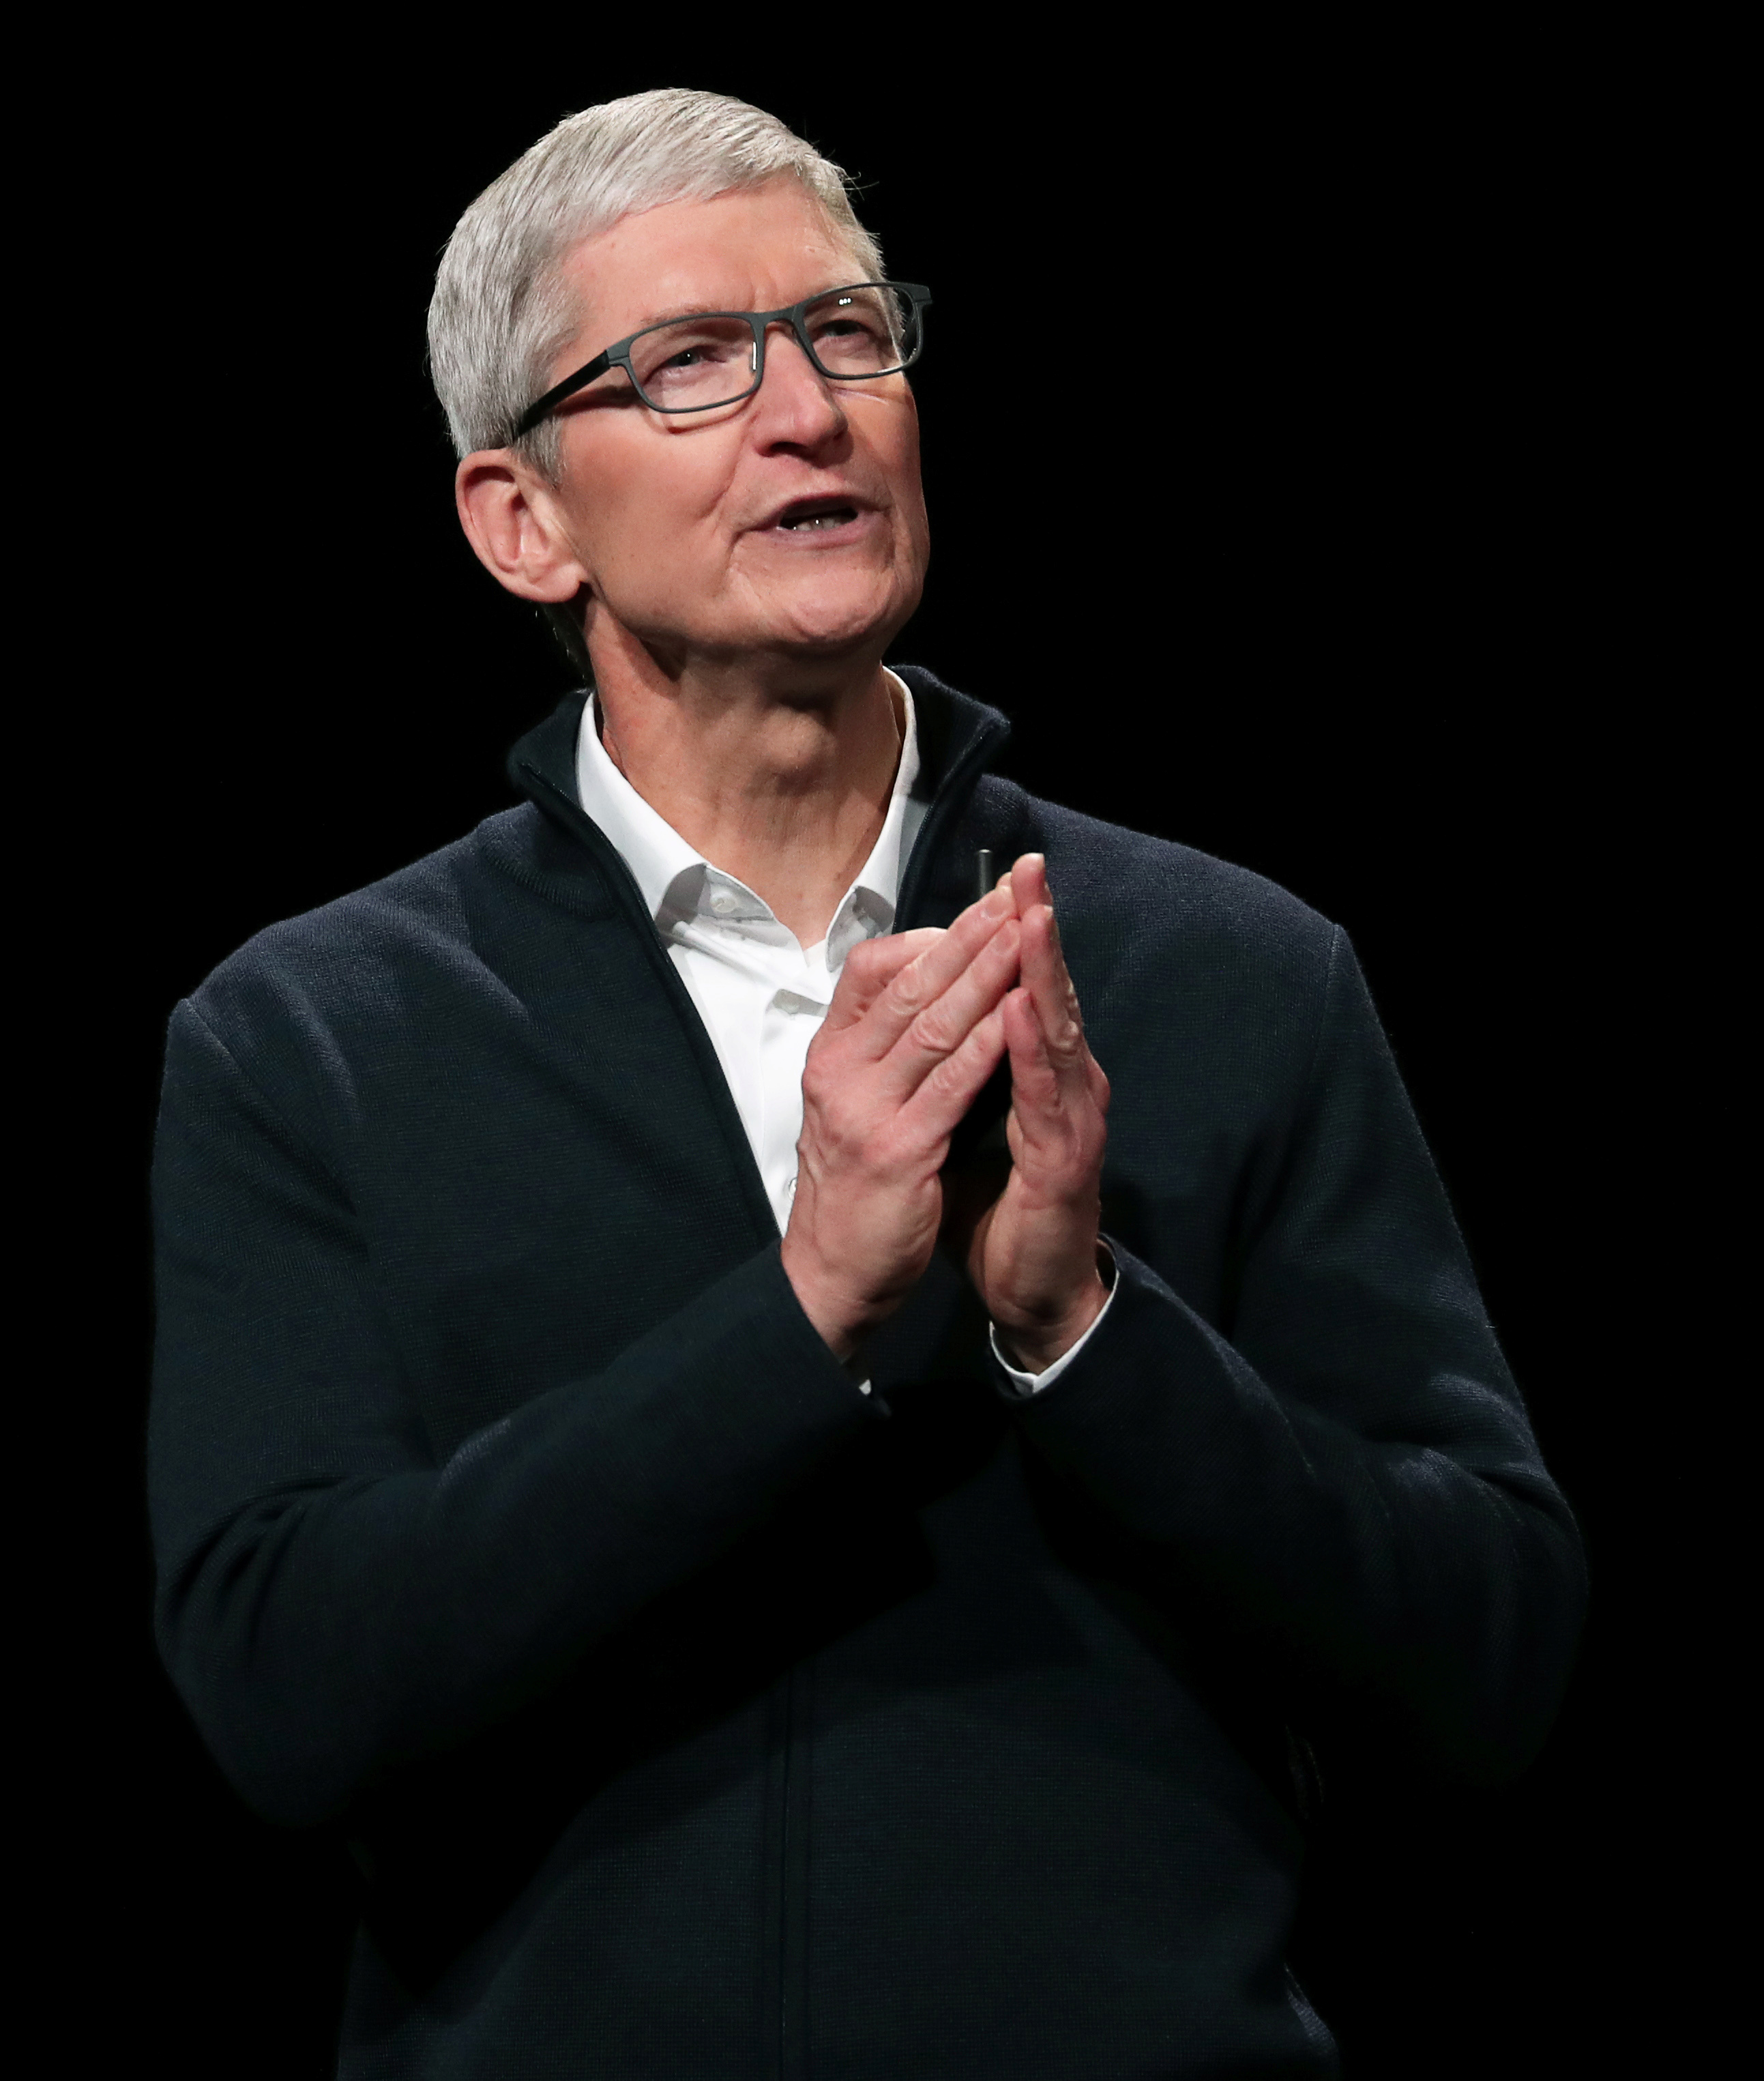 Apple CEO Tim Cook speaks during an Apple launch event in the Brooklyn borough of New York, U.S., October 30, 2018. REUTERS/Shannon Stapleton